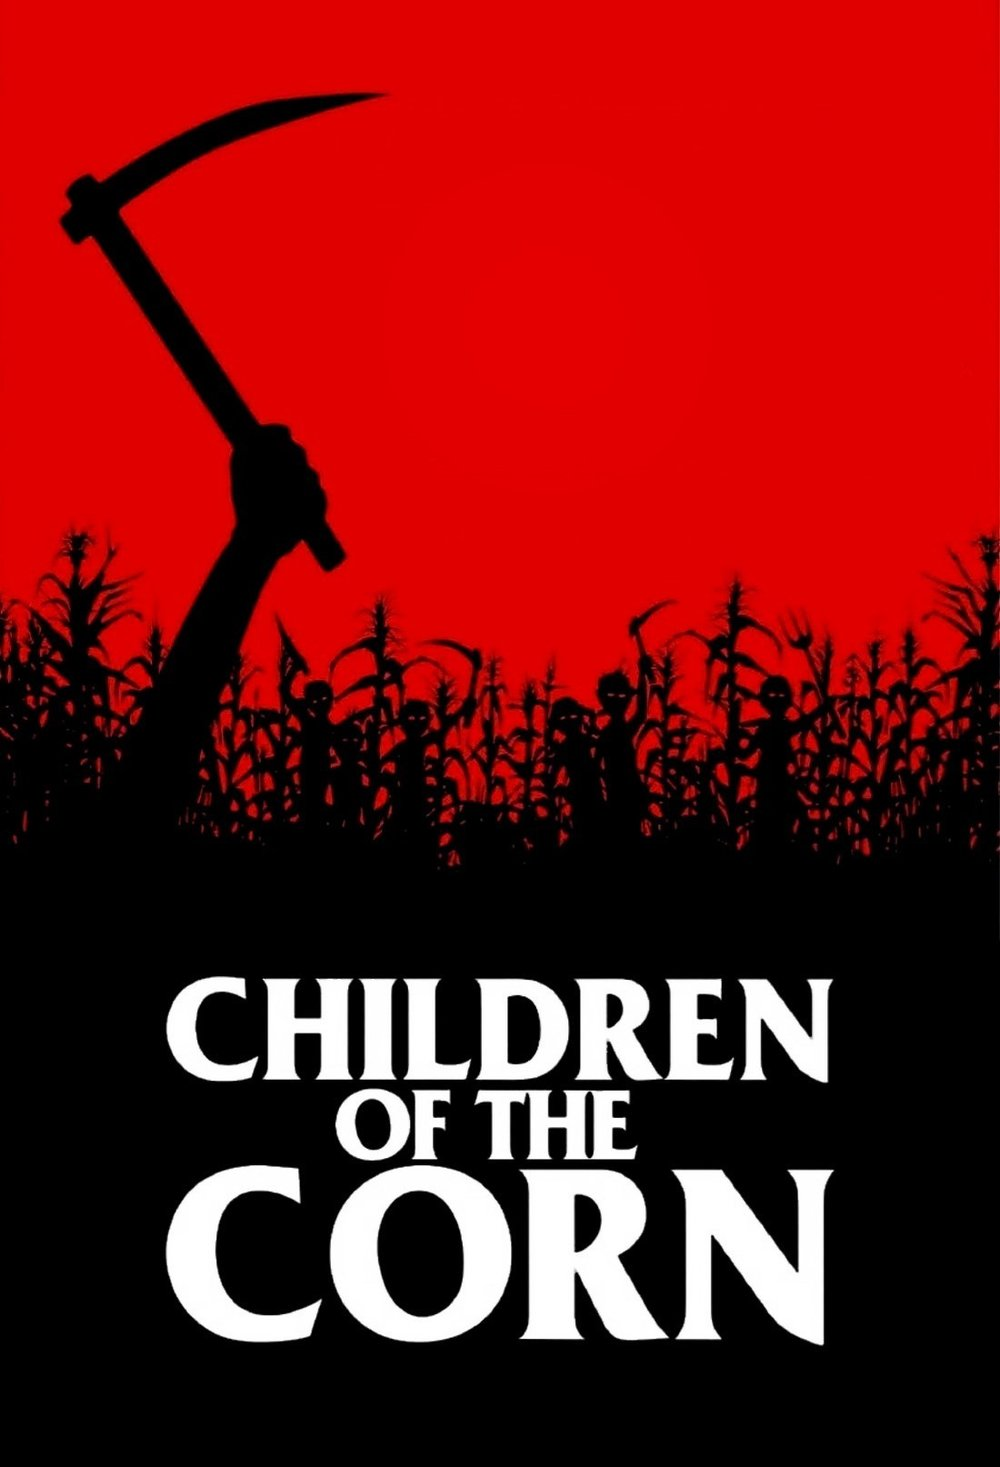 children-of-the-corn.26673.jpg